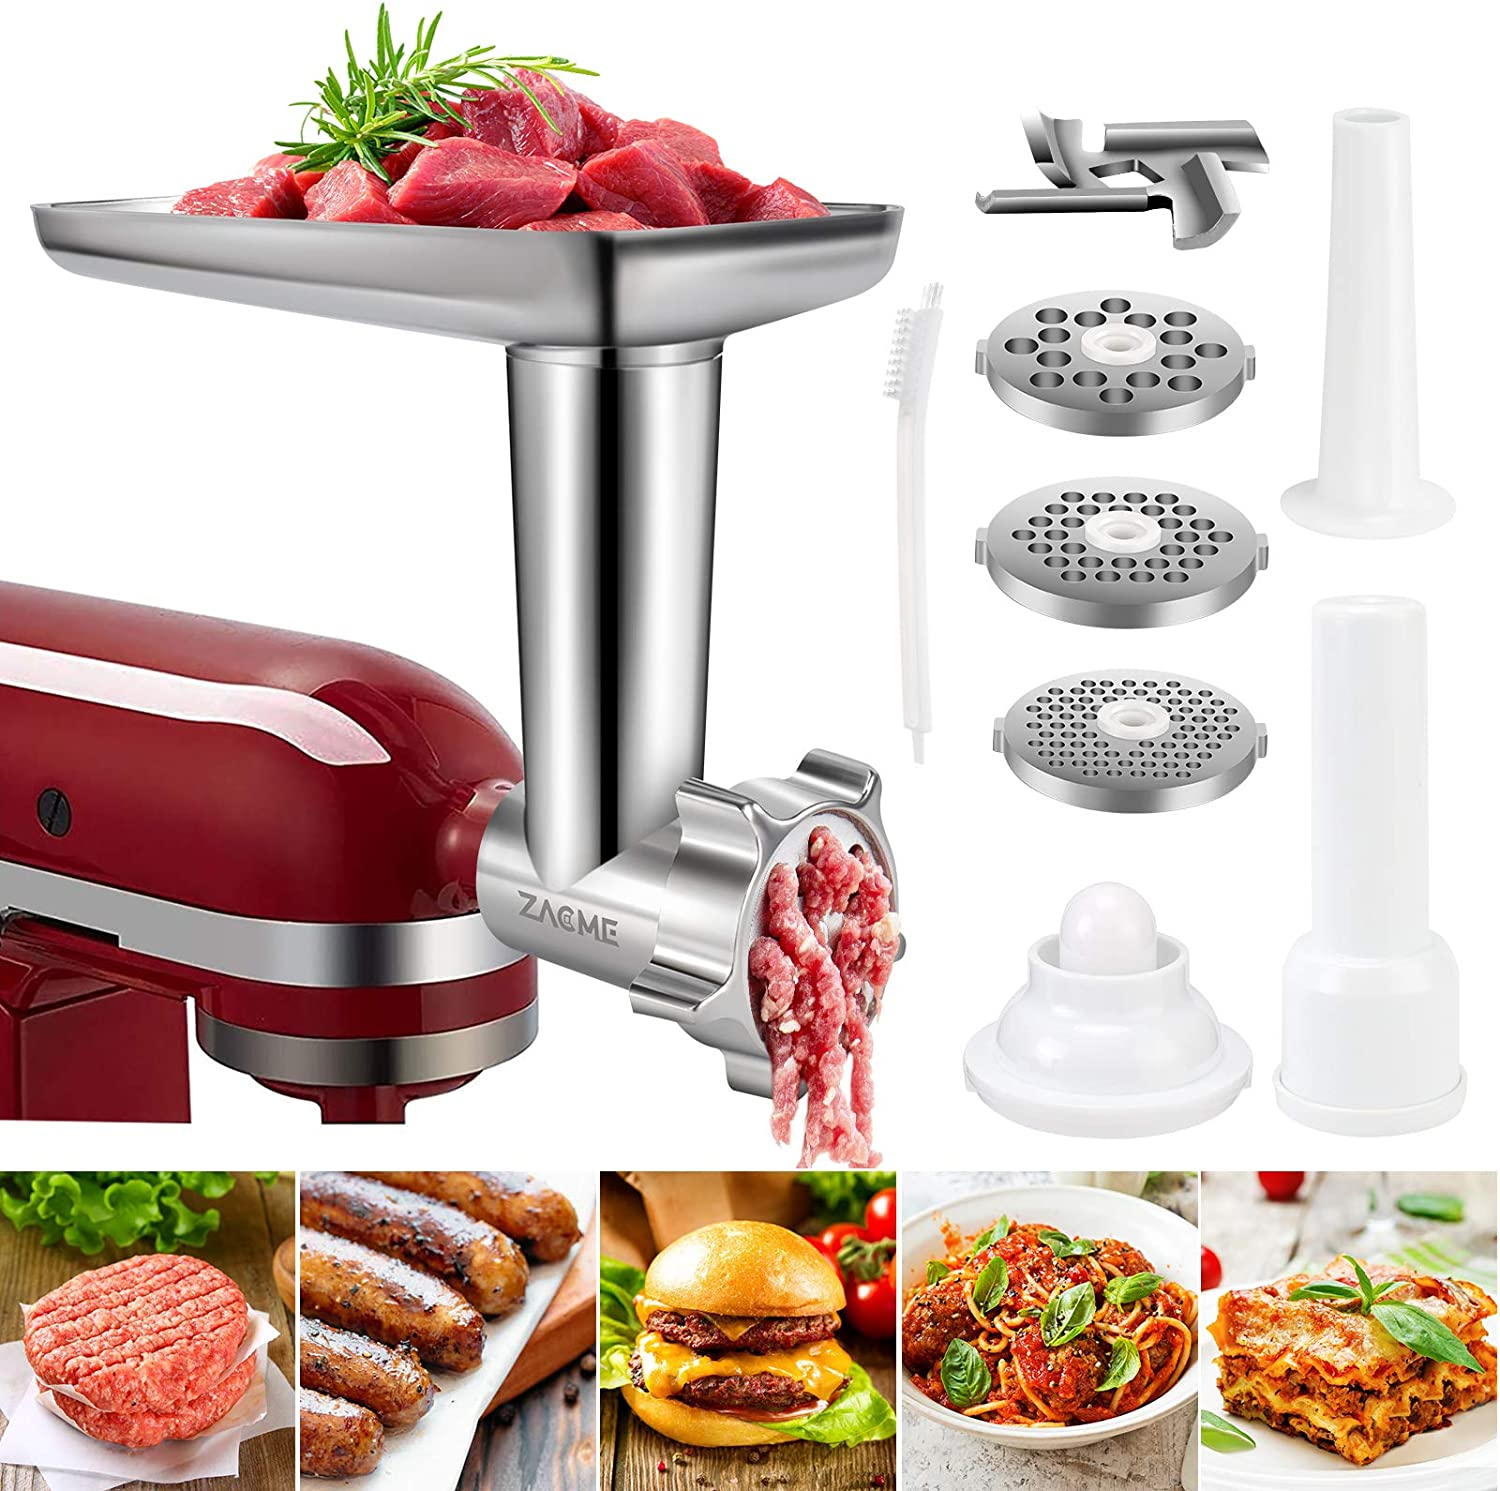 Meat Grinders Food Shredder Attachments for All Kitchenaid Stand Mixers, Electric Food Processor Kitchen Aid Mixer Accessories with 2 Sausage Stuffer and 4 Grinding Blades, Sturdy Metal Silver